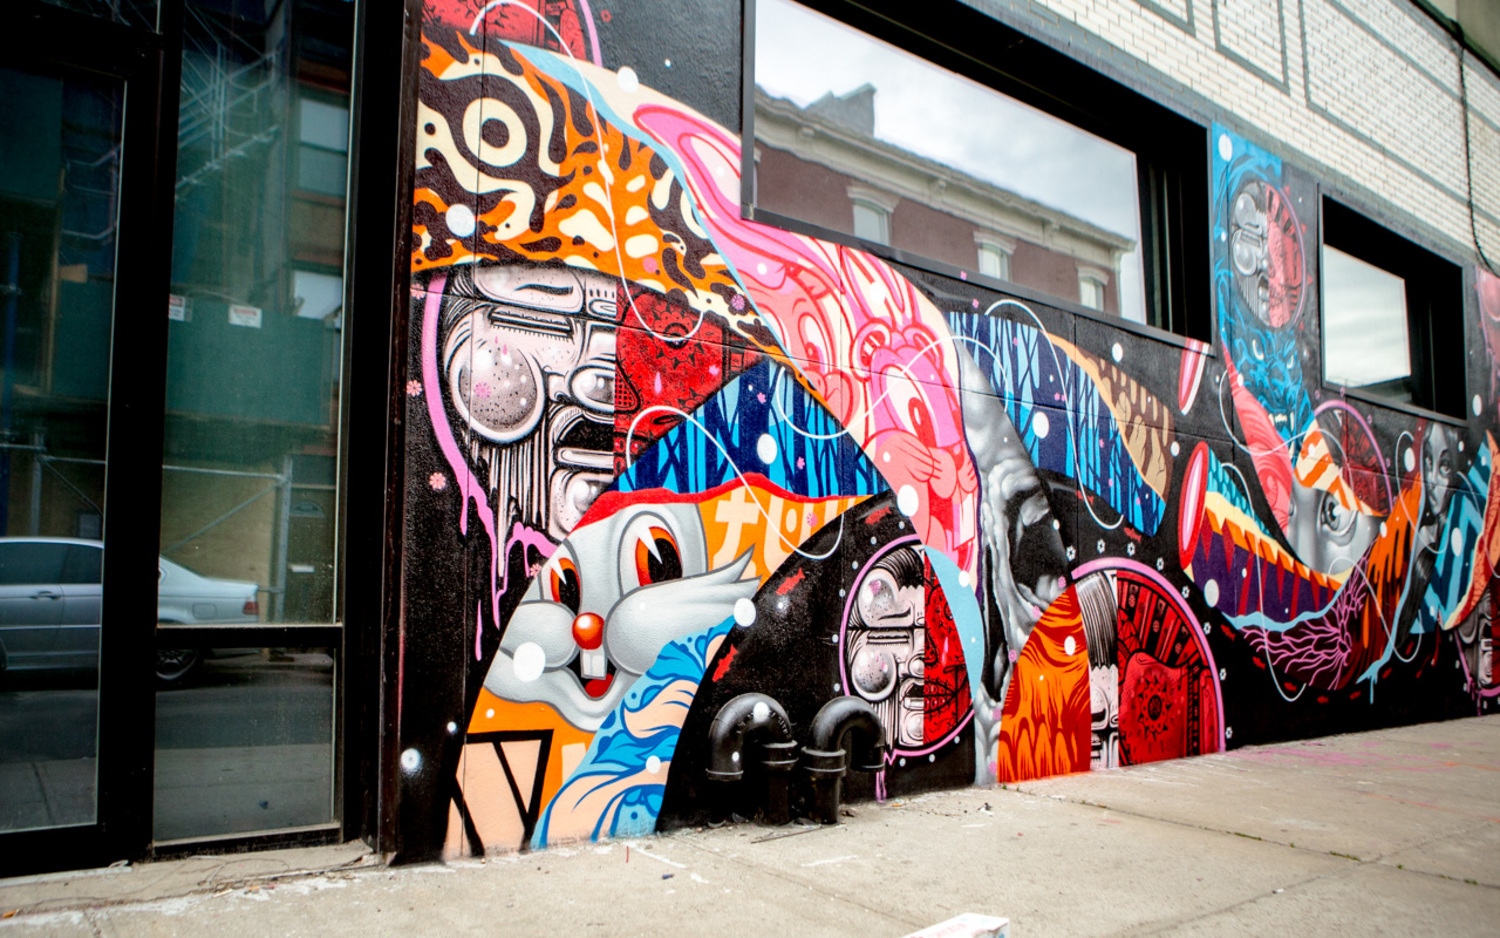 Tristan Eaton, HOW & NOSM, and Cyrcle All Worked Together on a New Mural in Williamsburg